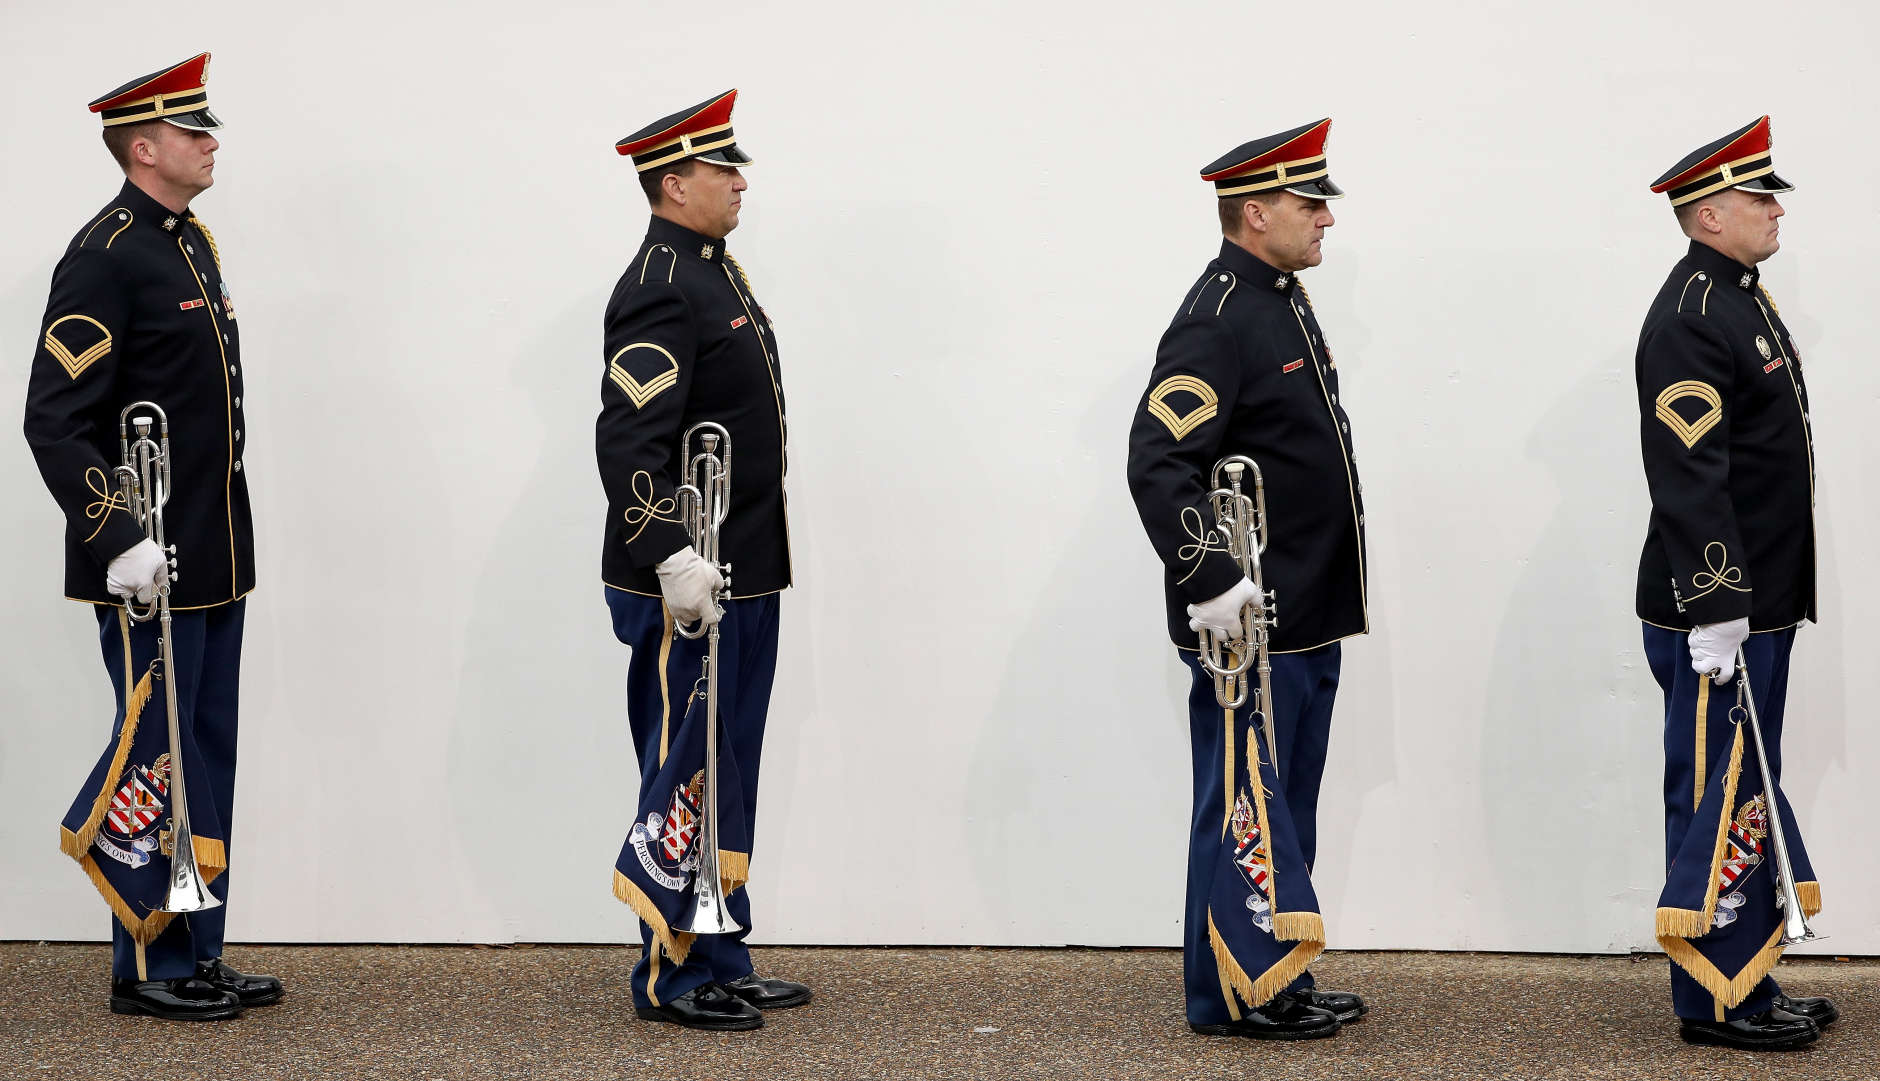 WASHINGTON, DC - JANUARY 20:  Members of a military band line up during the Inaugural Parade on January 20, 2017 in Washington, DC. Donald J. Trump was sworn in today as the 45th president of the United States.  (Photo by Patrick Smith/Getty Images)